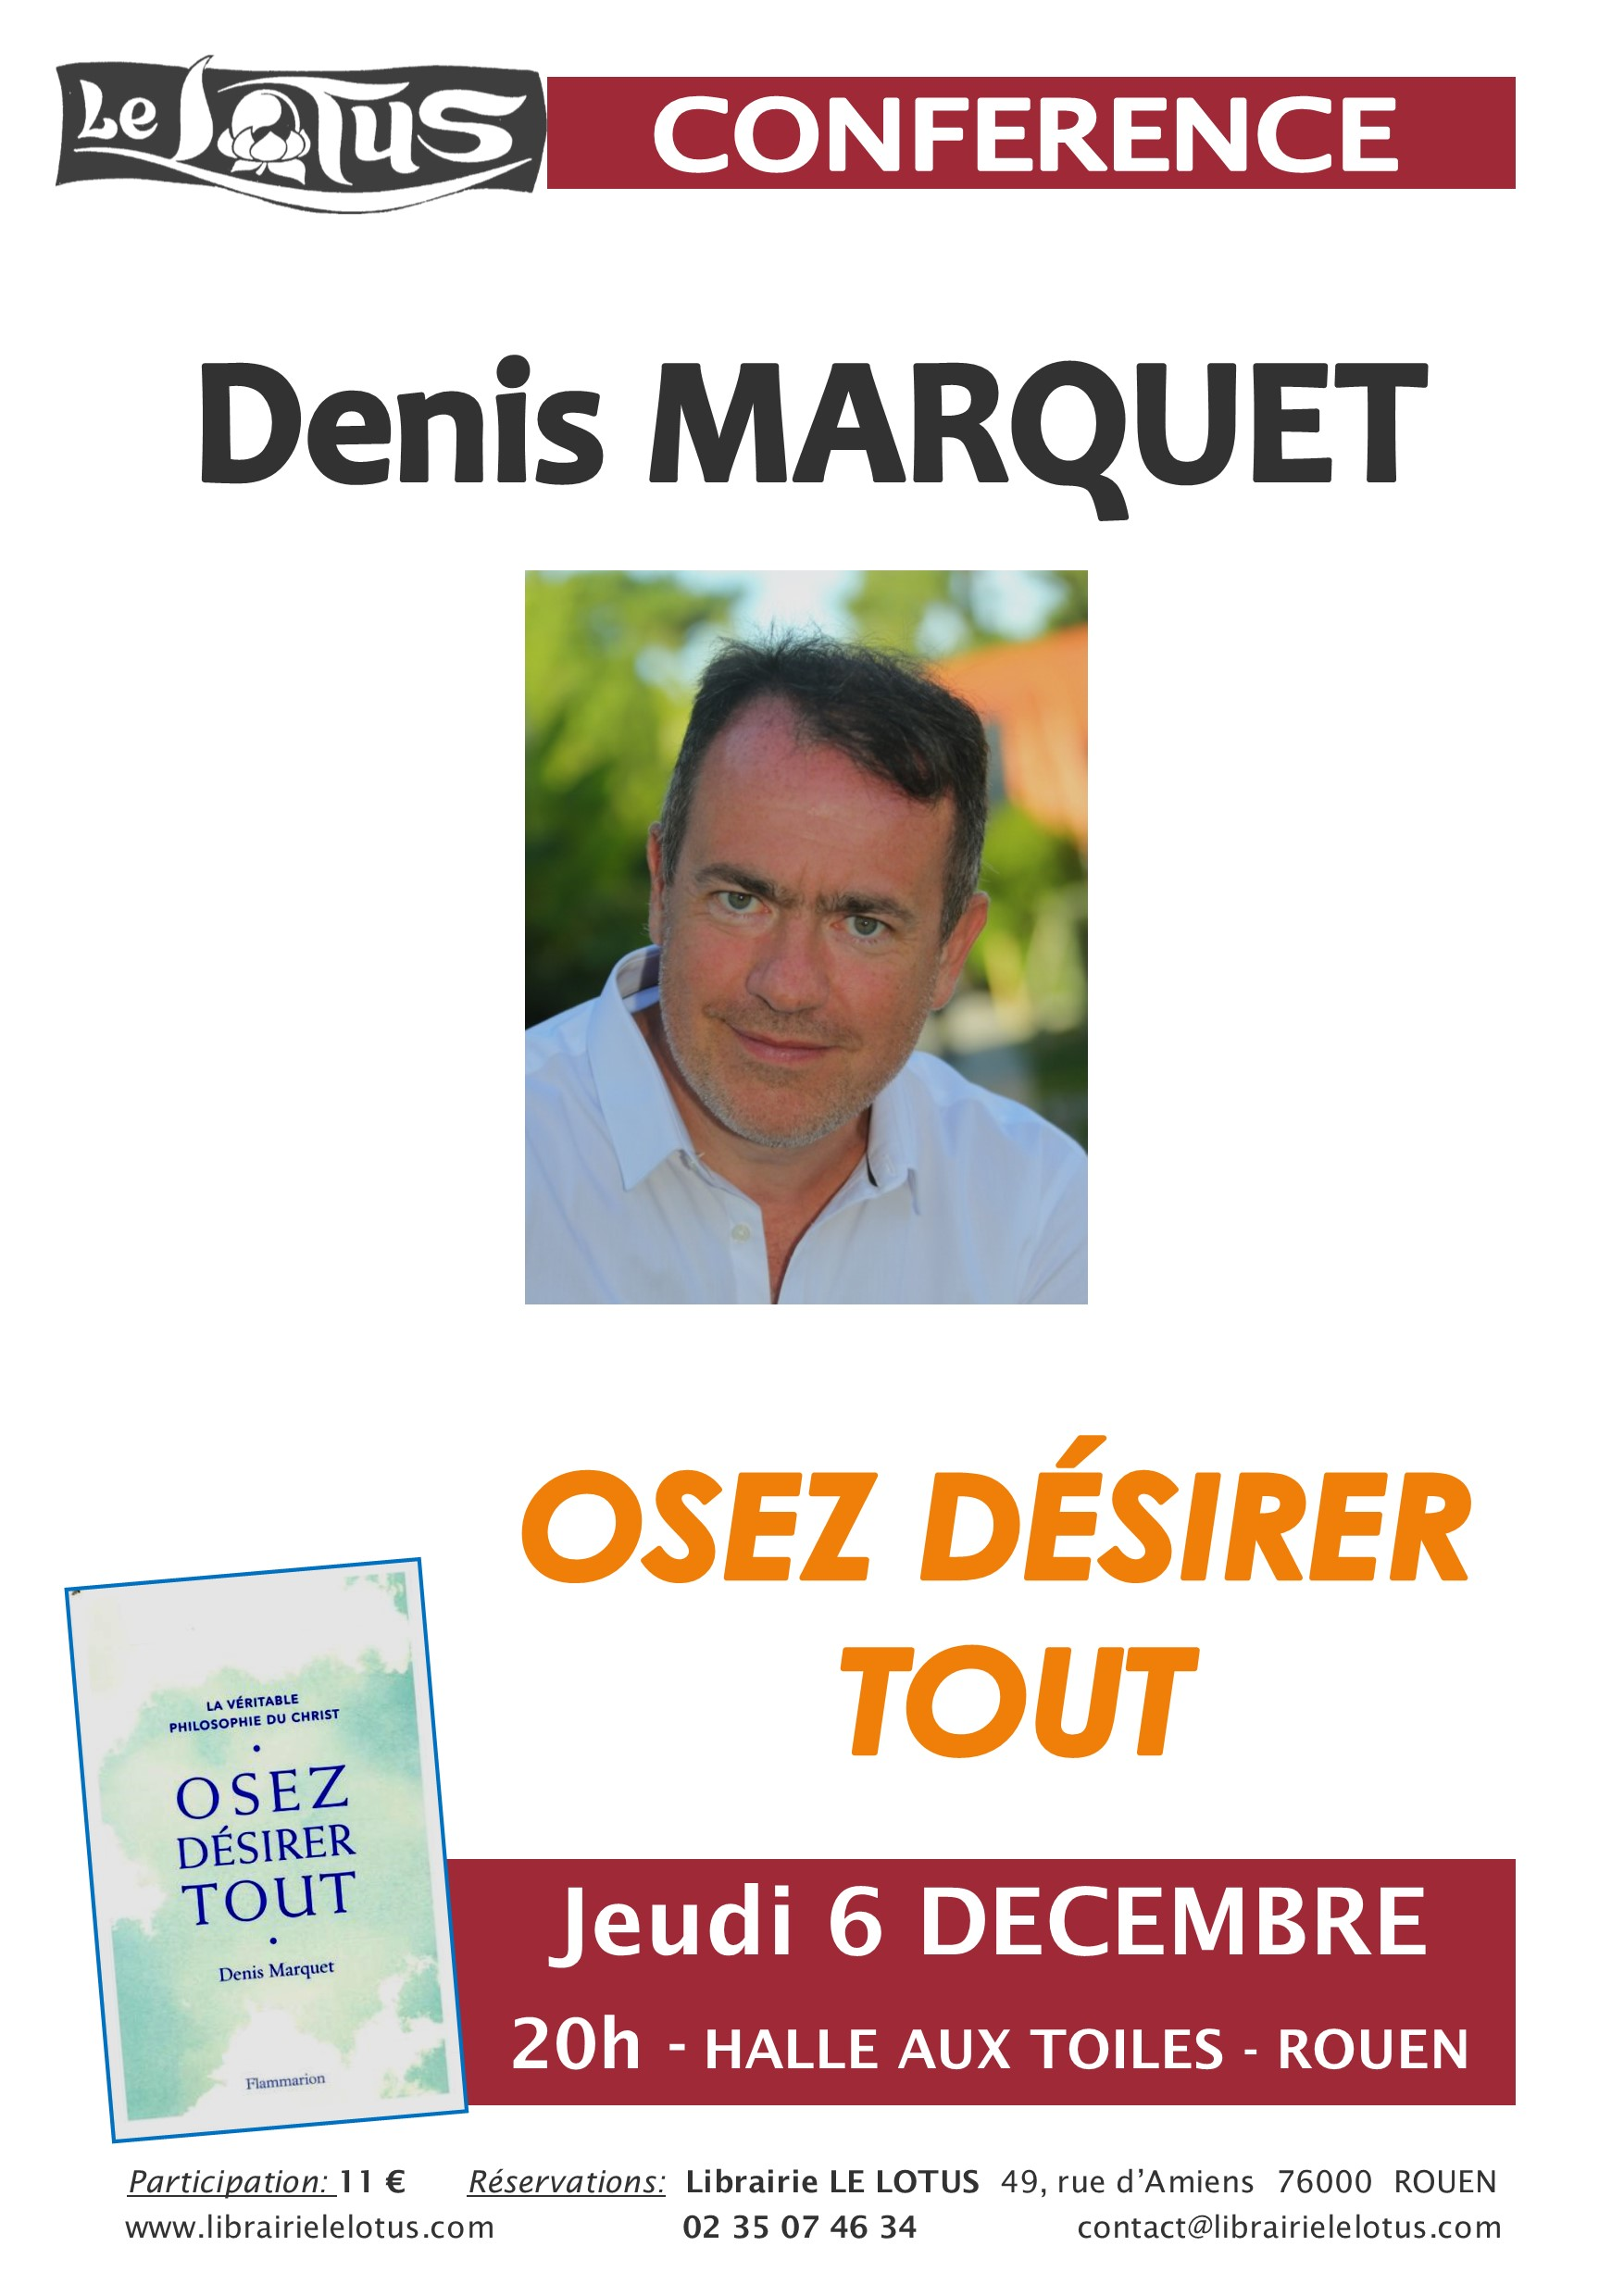 CONFERENCE - OSEZ DESIRER TOUT